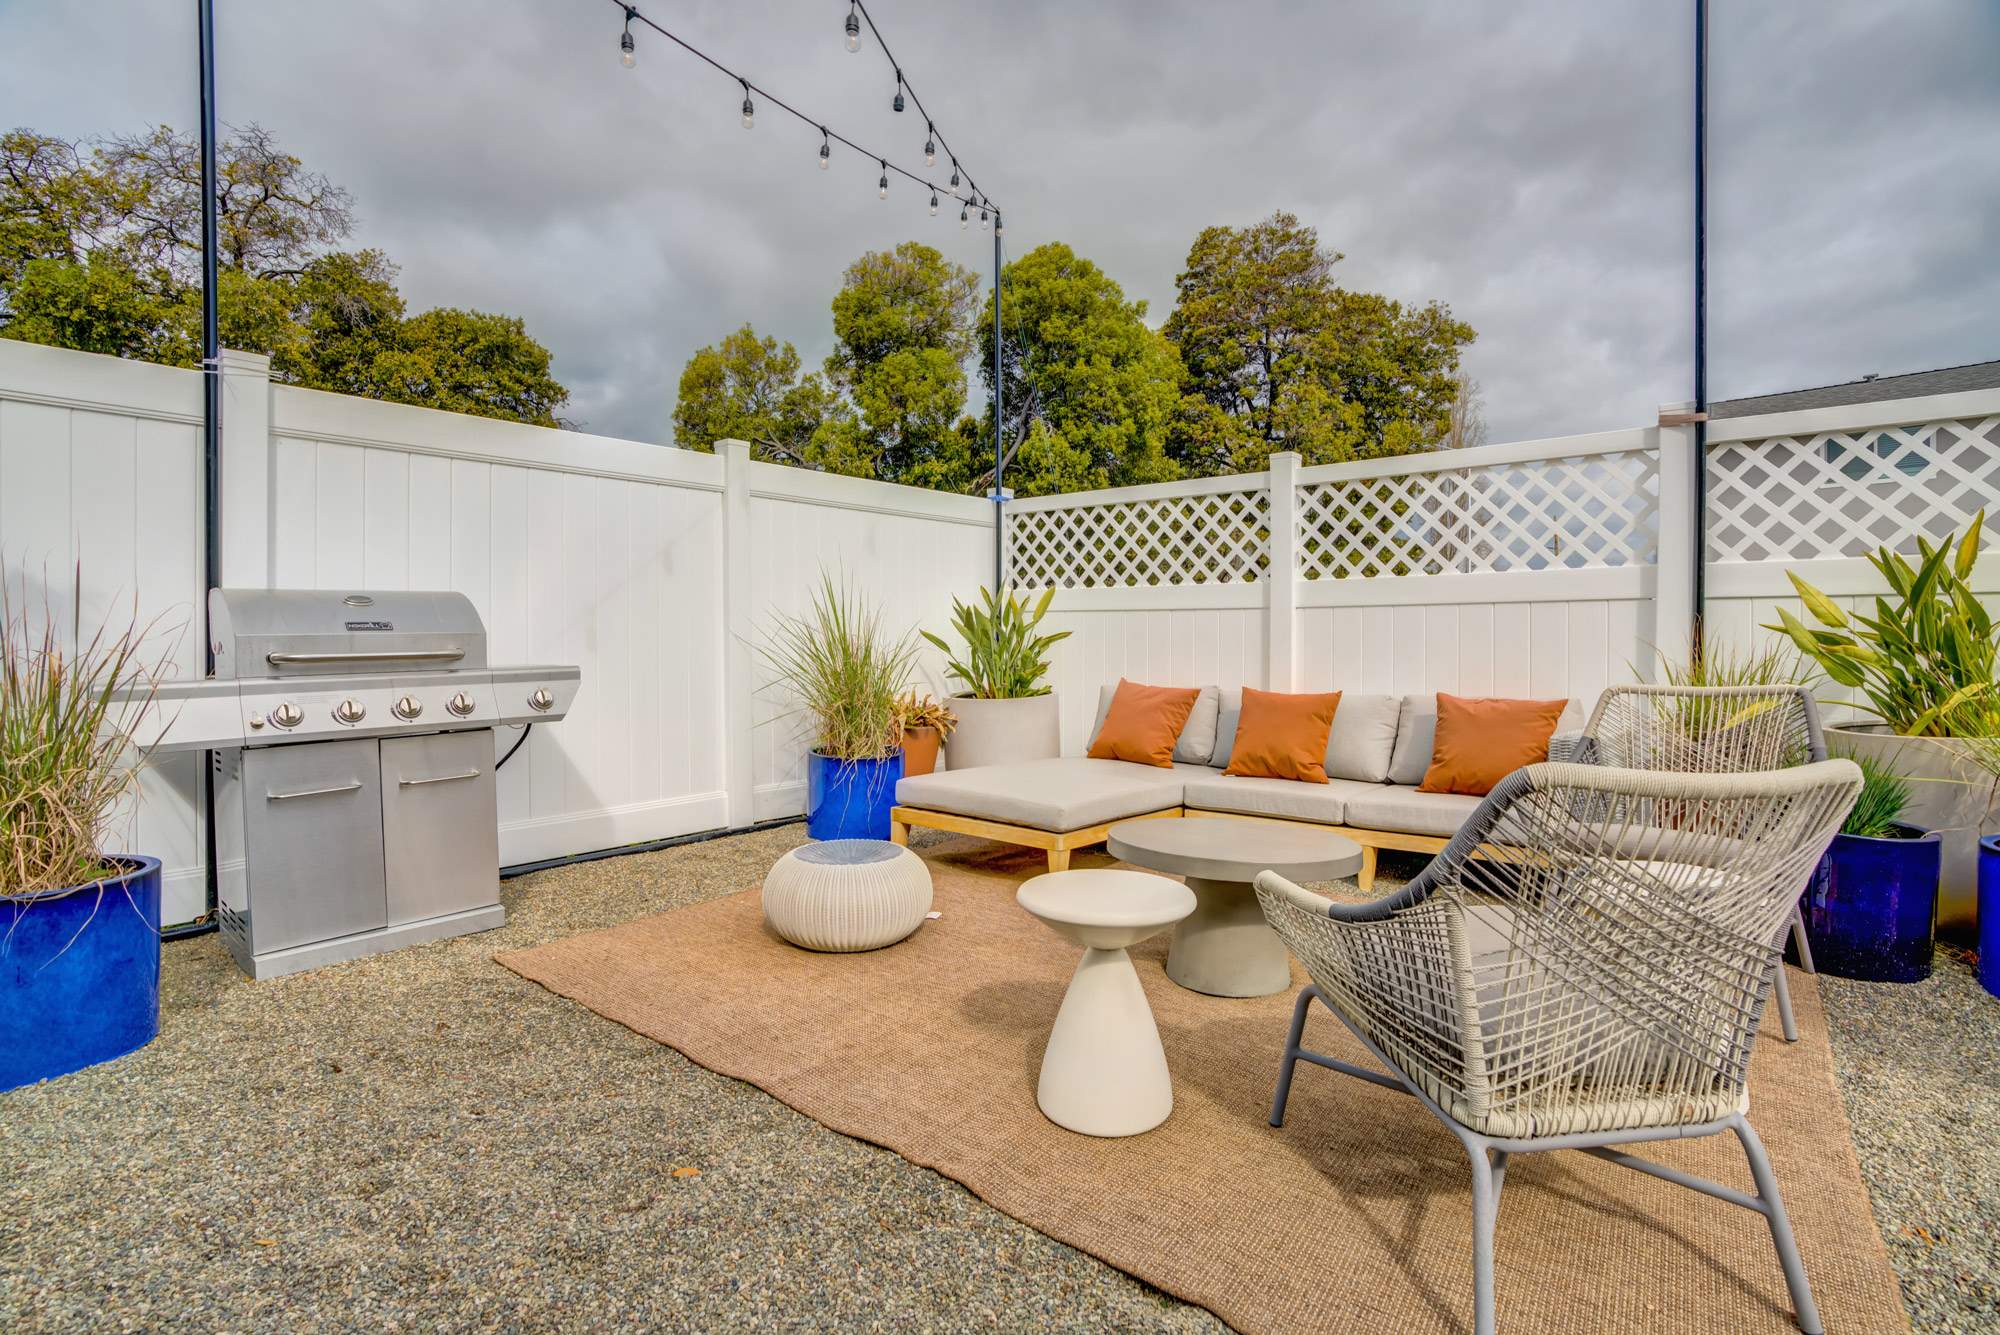 Apartment exterior sitting area with low couch, BBQ and latticed fence